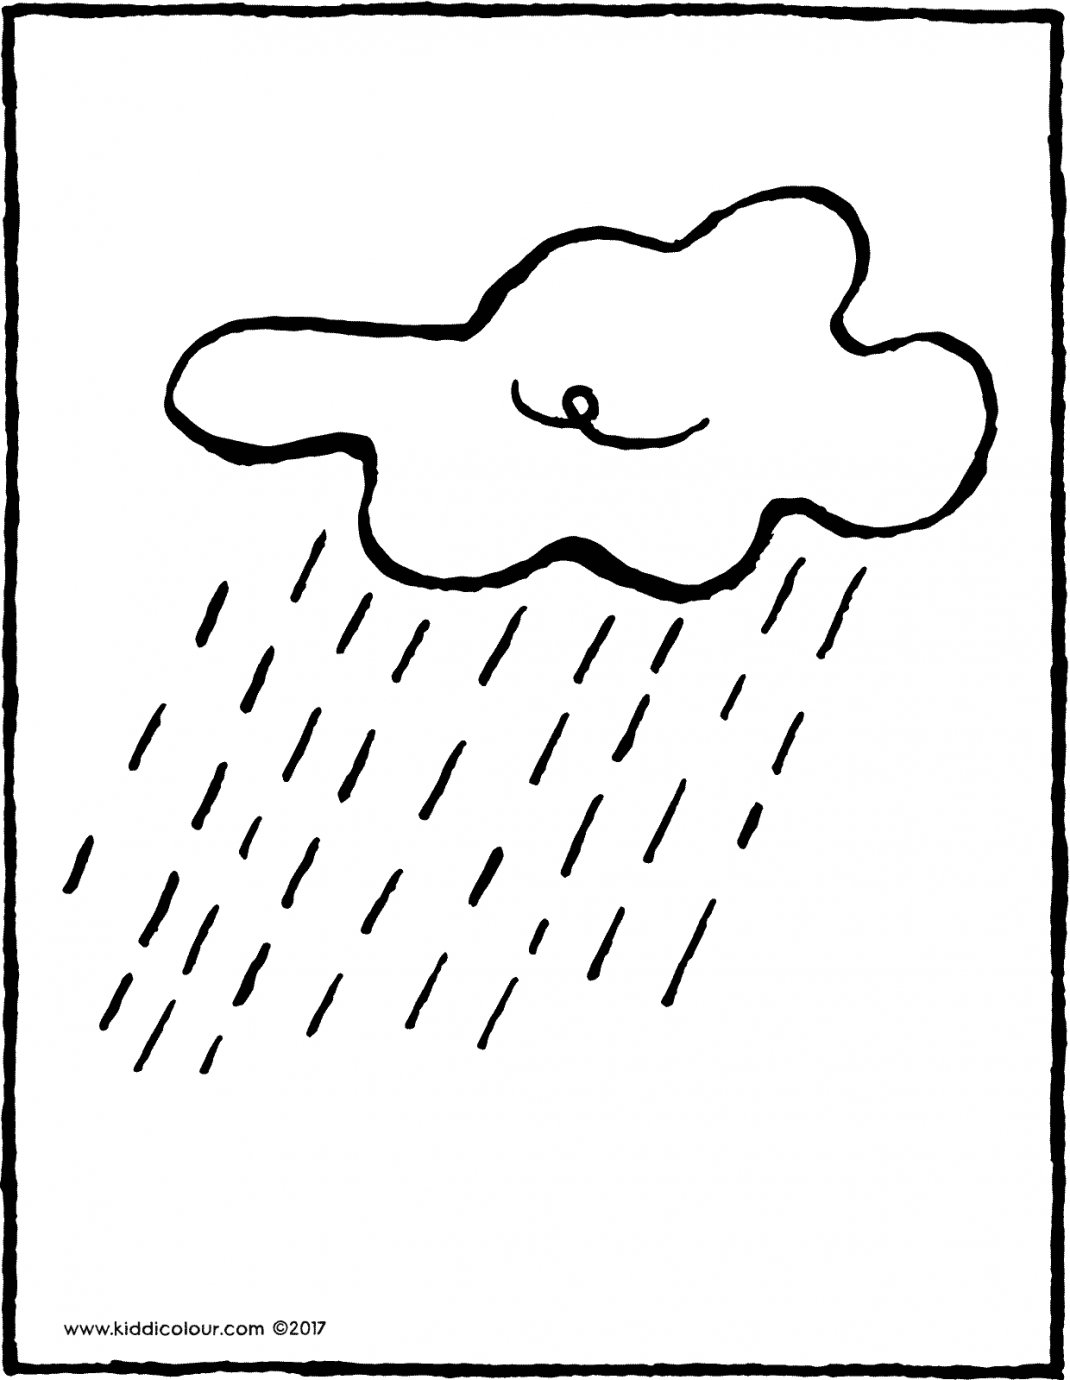 rain cloud colouring page drawing picture 01V